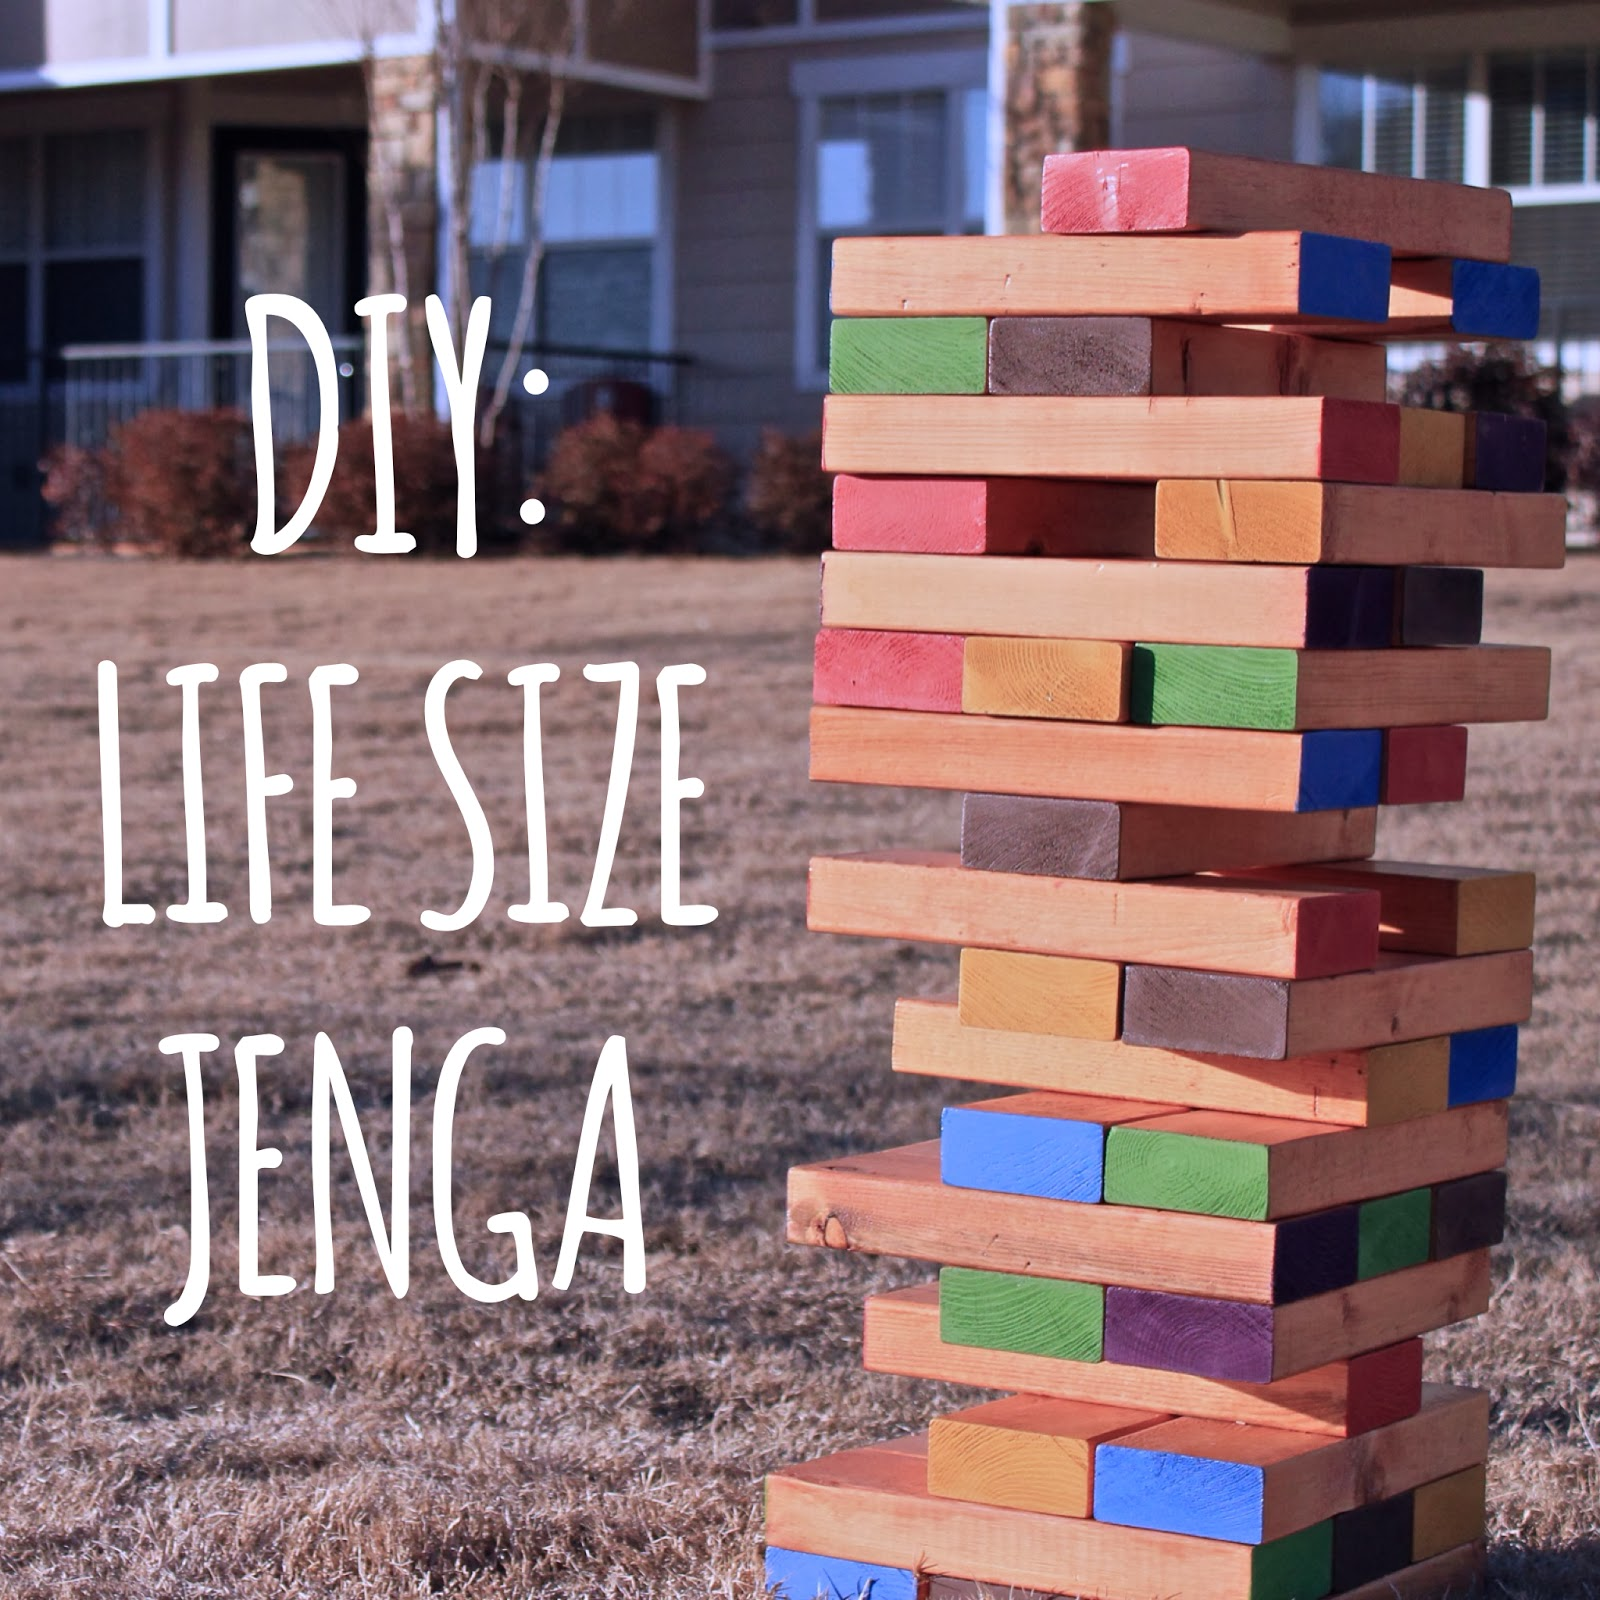 Diy lifesize jenga hansen heidelberg diy lifesize jenga after perusing pinterest and seeing a few lifesize jenga sets i couldnt help but think this would be the perfect diy gift for a housewarming party solutioingenieria Gallery